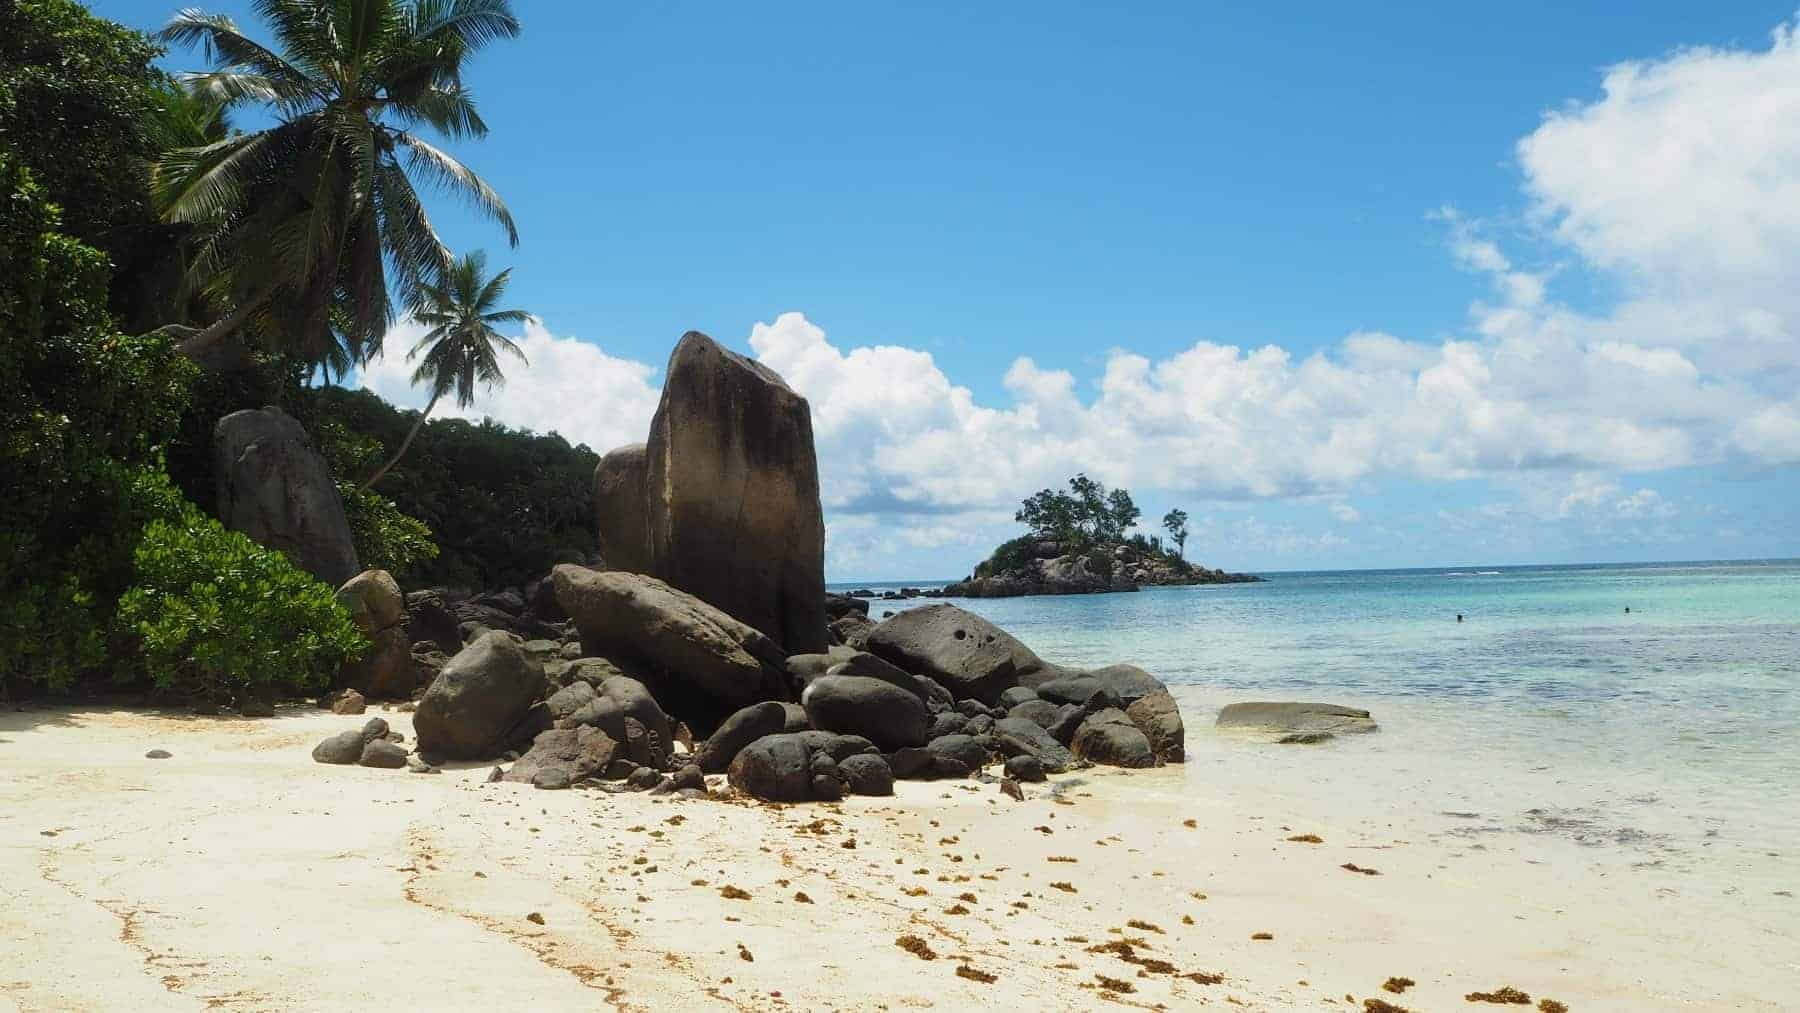 Seychelles the Beauty (beach pictures)